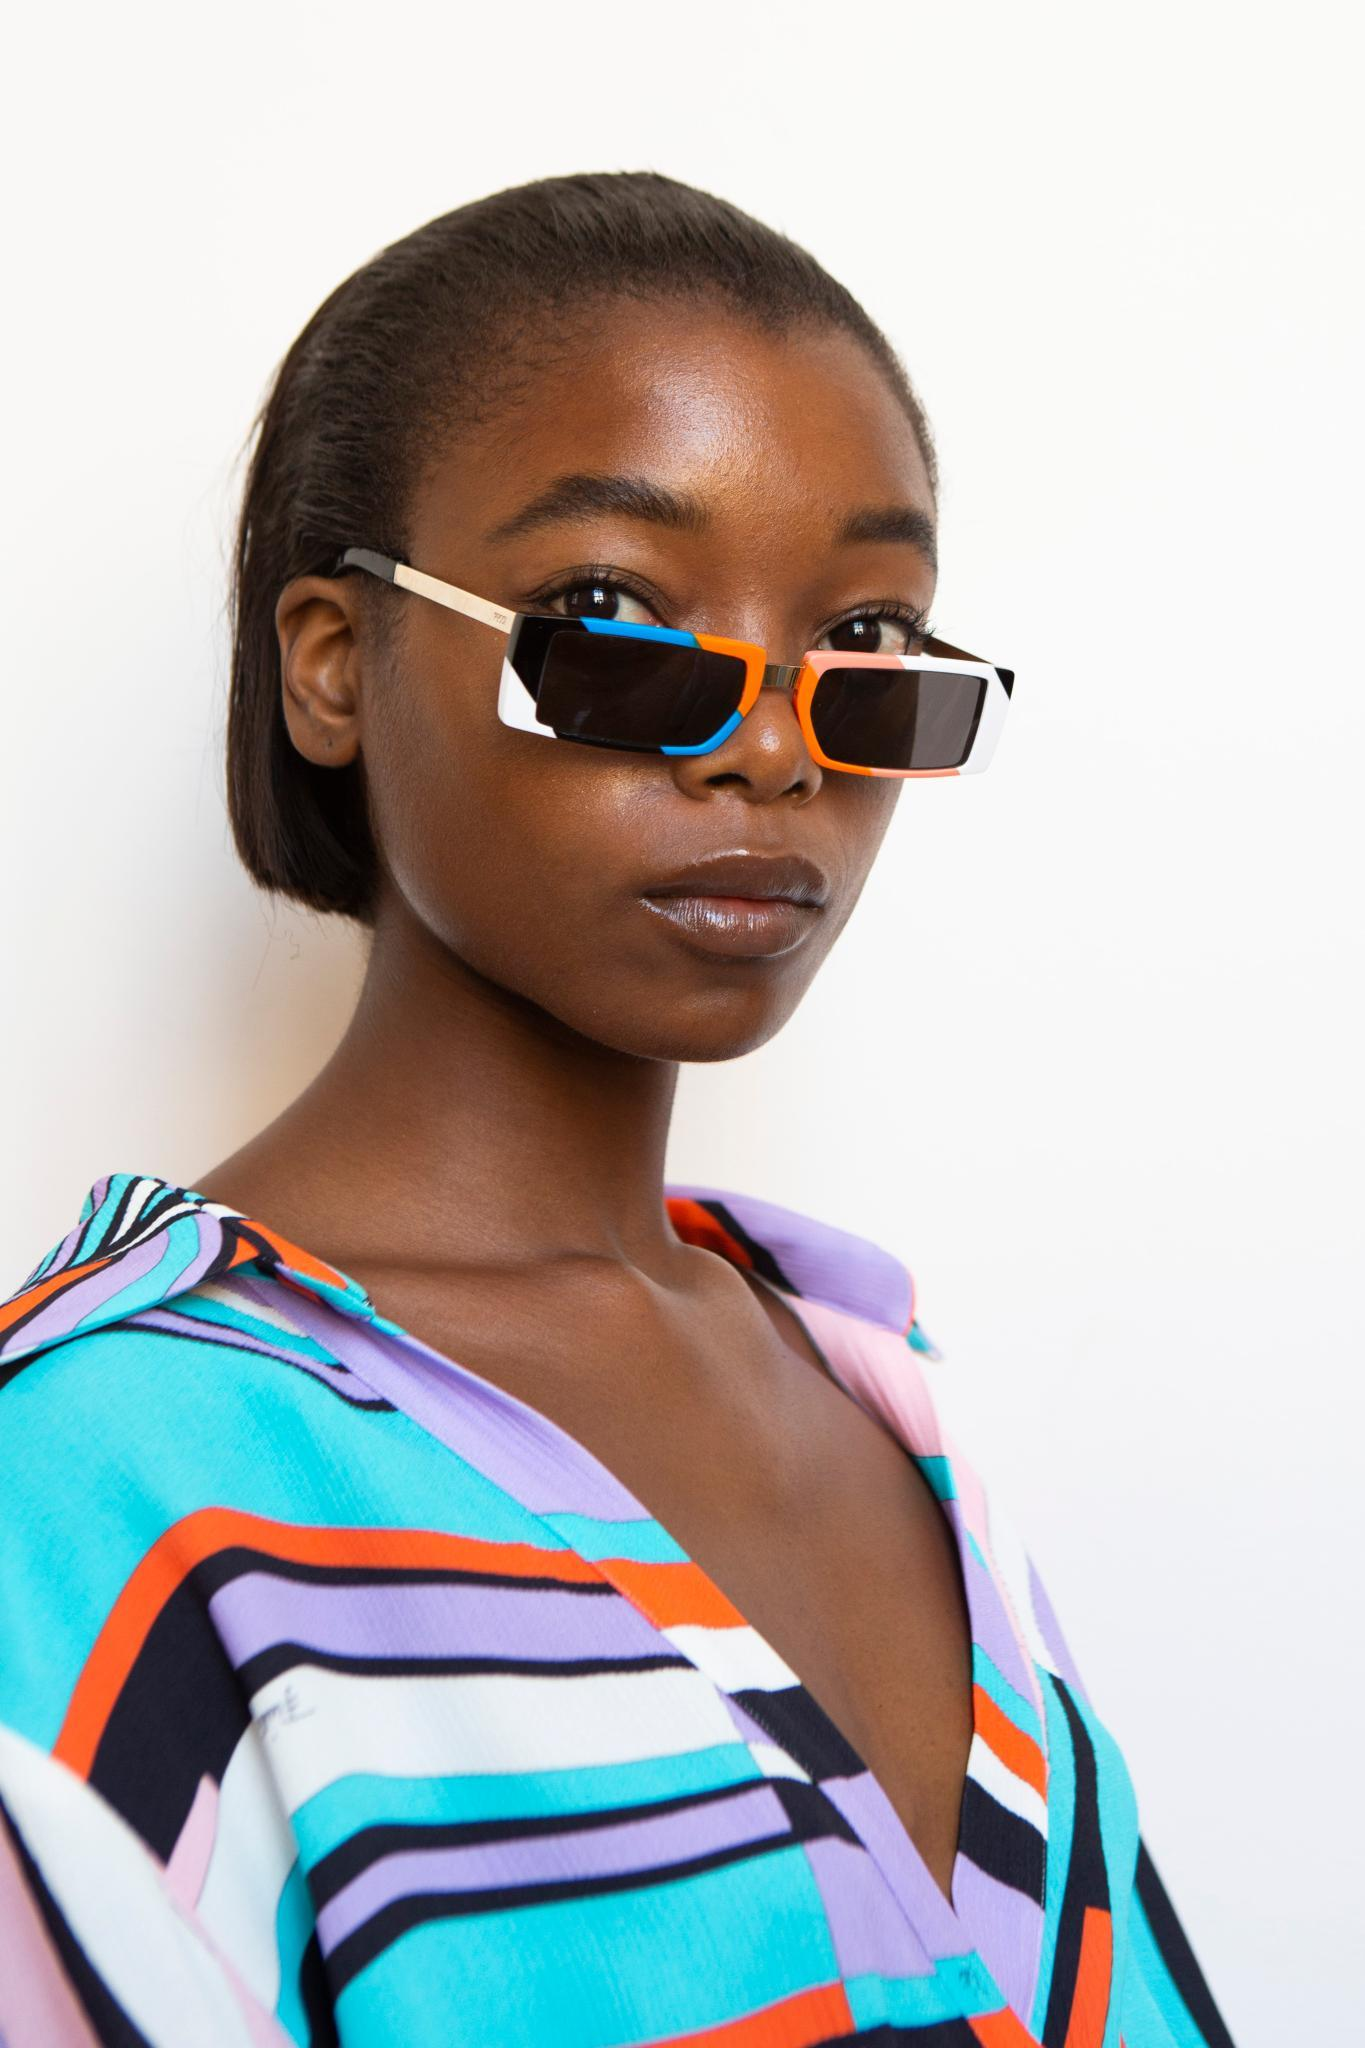 Short black hair ideas: black model with a straight combed back bob wearing glasses